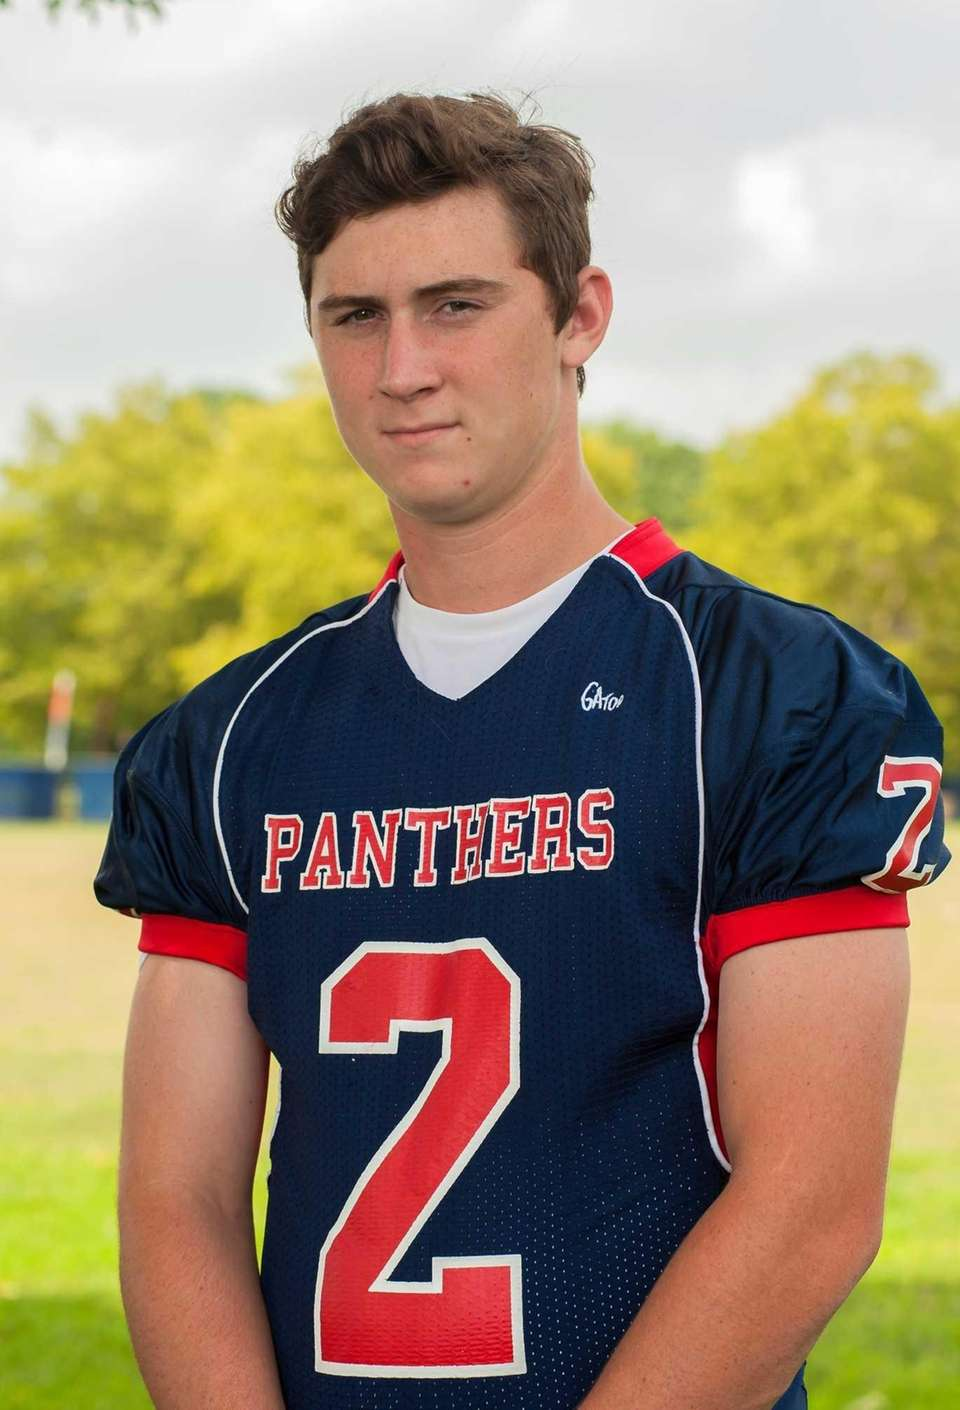 Miller Place, senior Quarterback Stephen Farrell passed for